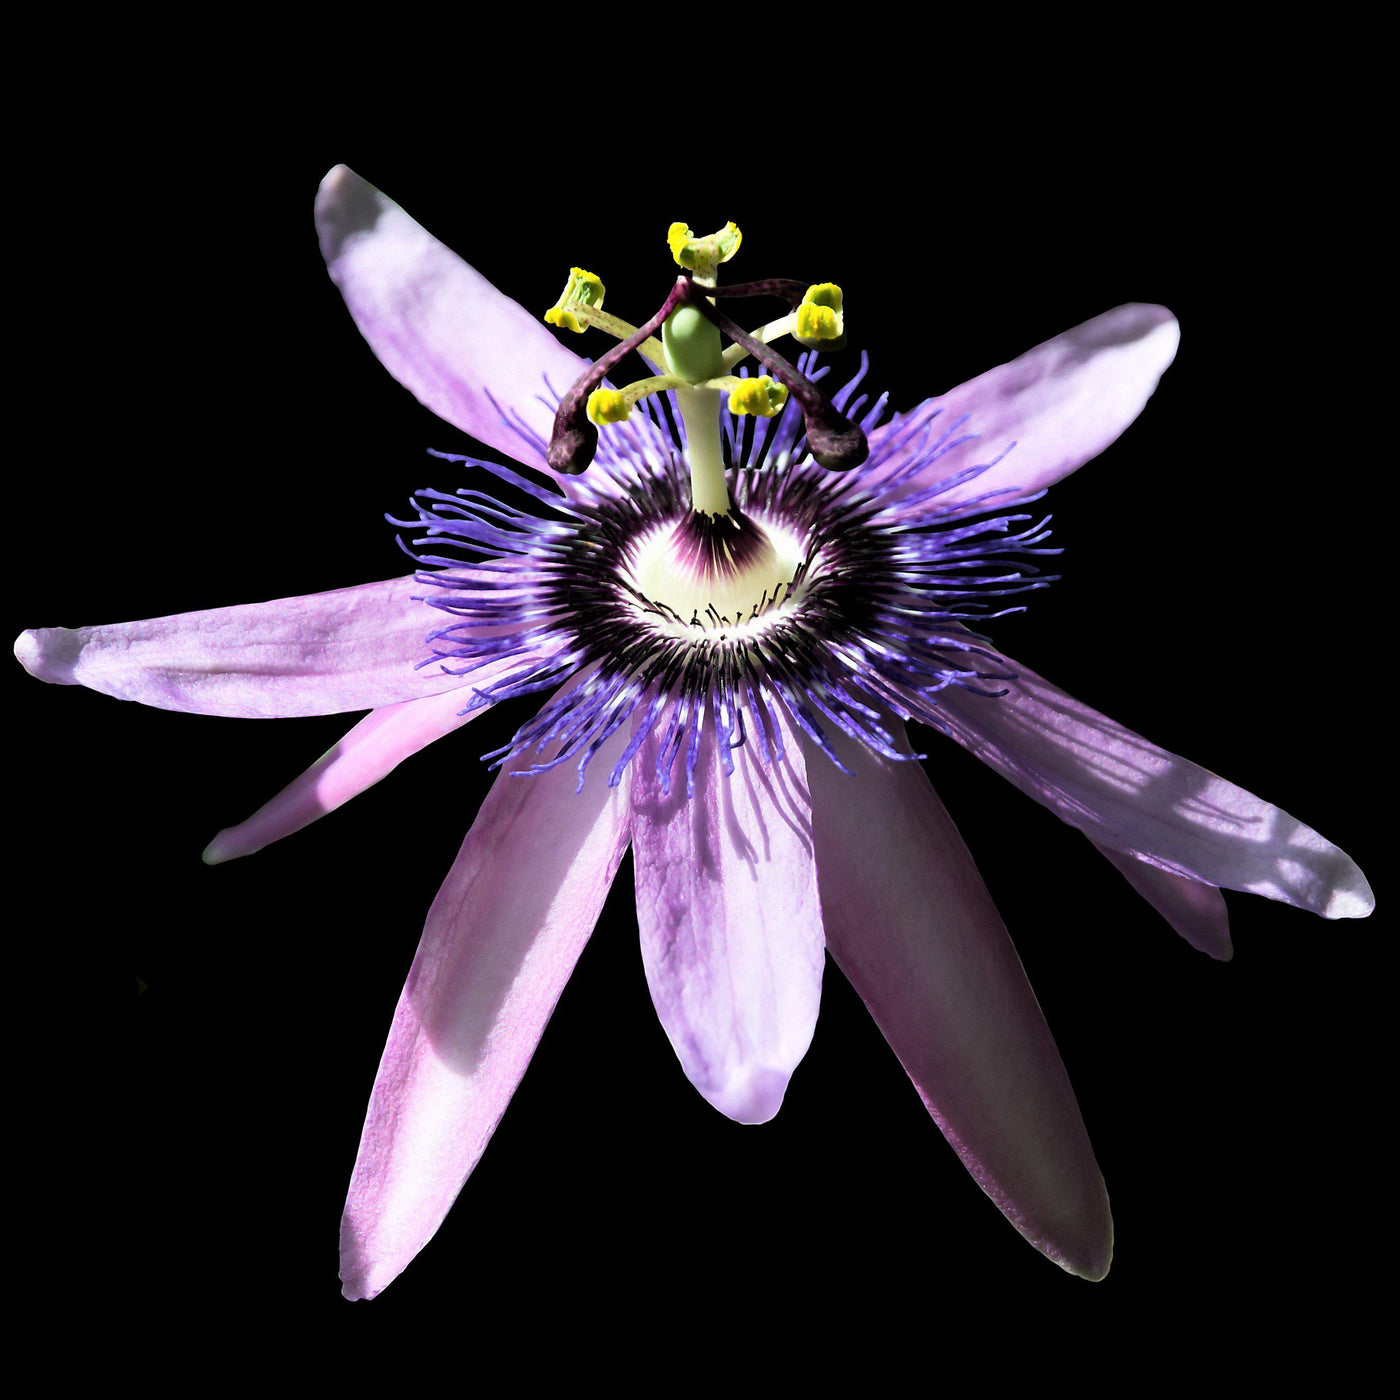 Grow passion flower betty myles young purple passiflorabbetty myles passion flower passiflora betty myles young fragrant mightylinksfo